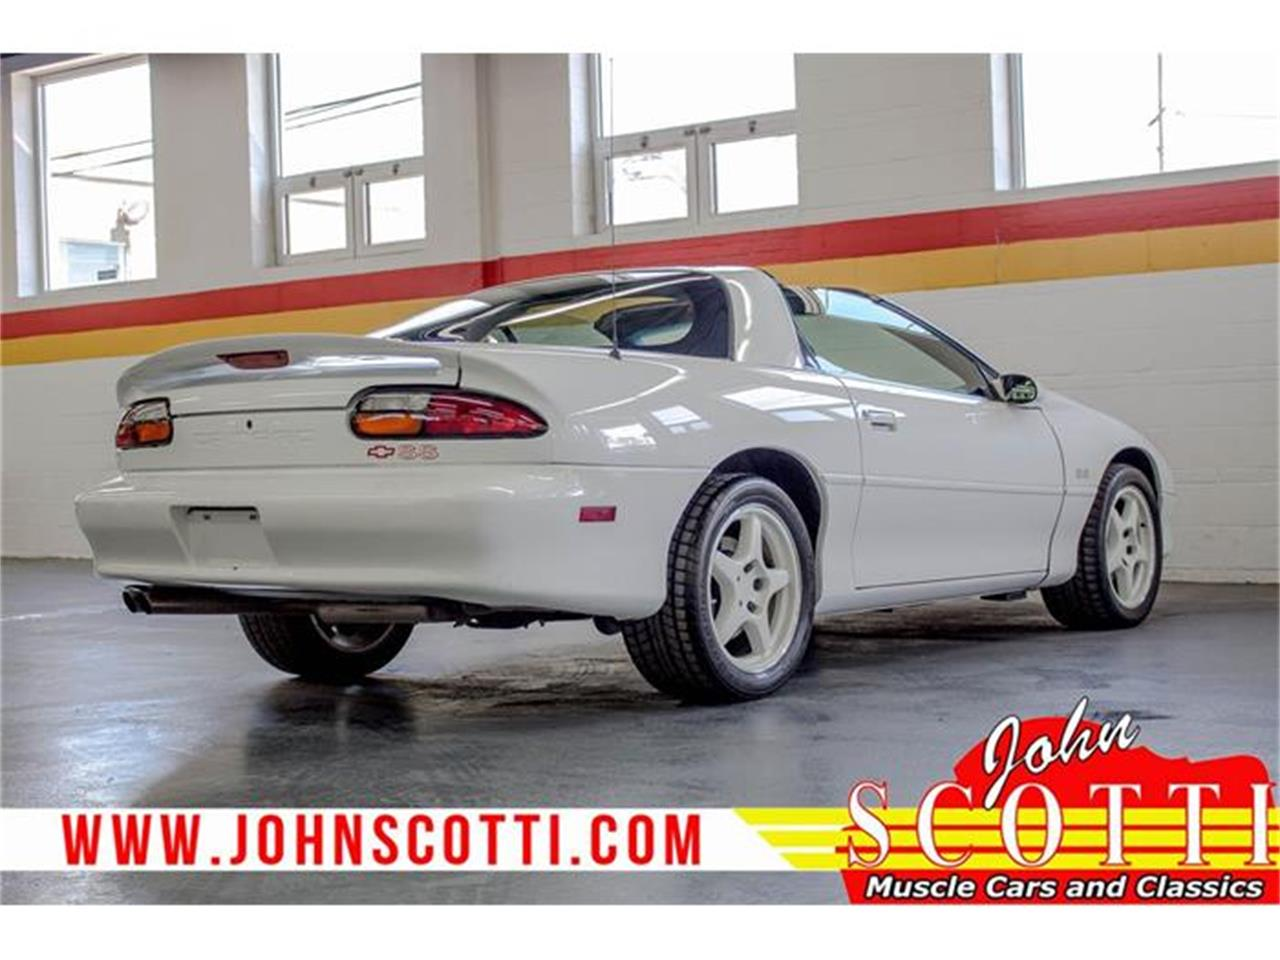 Large Picture of '97 Camaro SS Z28 located in Montreal Quebec - $22,990.00 - G9NR